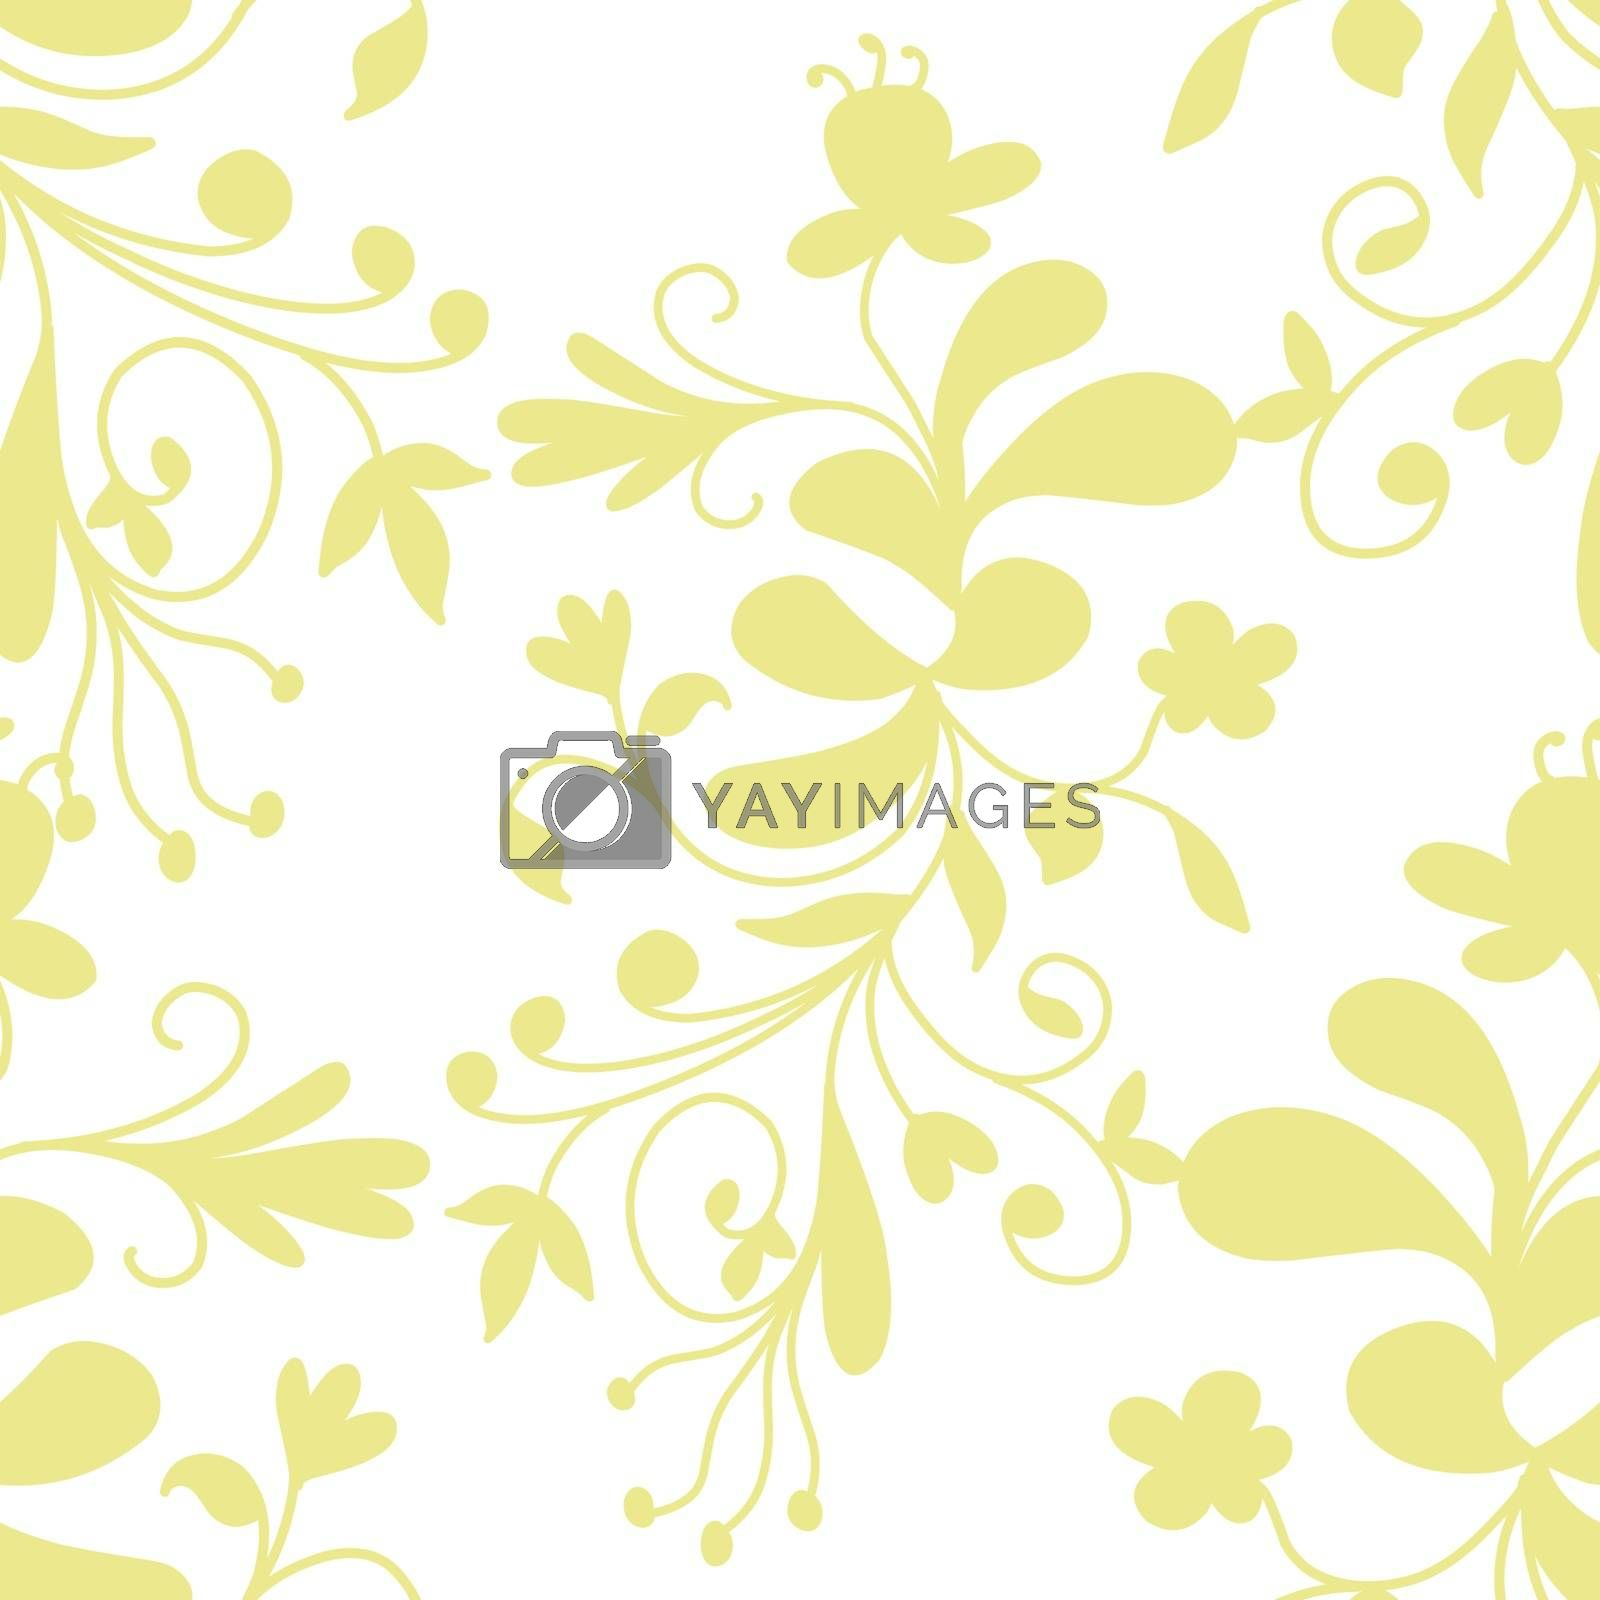 Stock Illustration Abstract Floral Seamless Pattern on a White Background